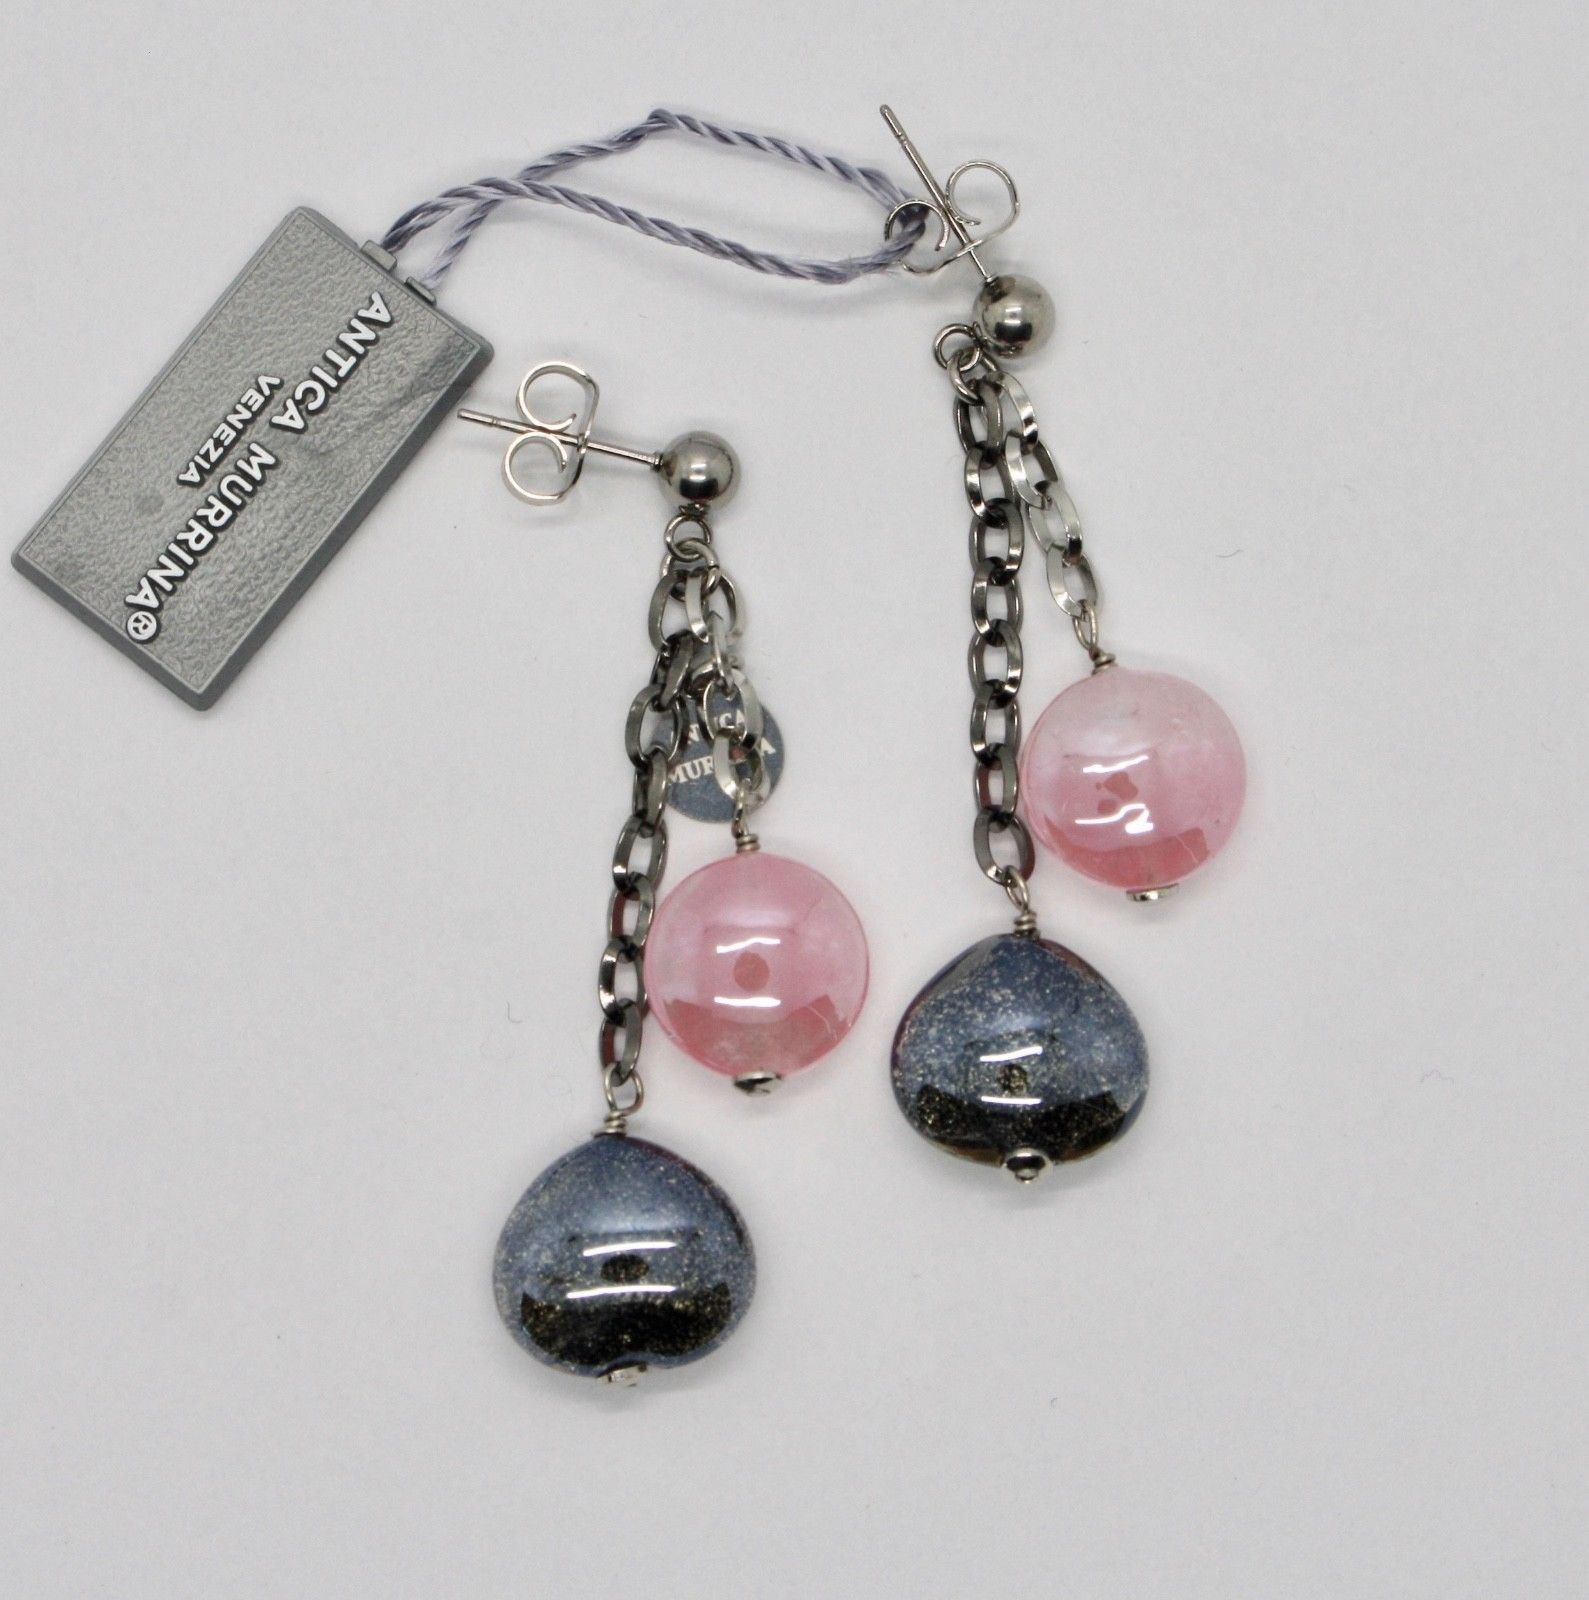 EARRINGS ANTICA MURRINA VENEZIA WITH MURANO GLASS GRAY AND PINK OR590A45